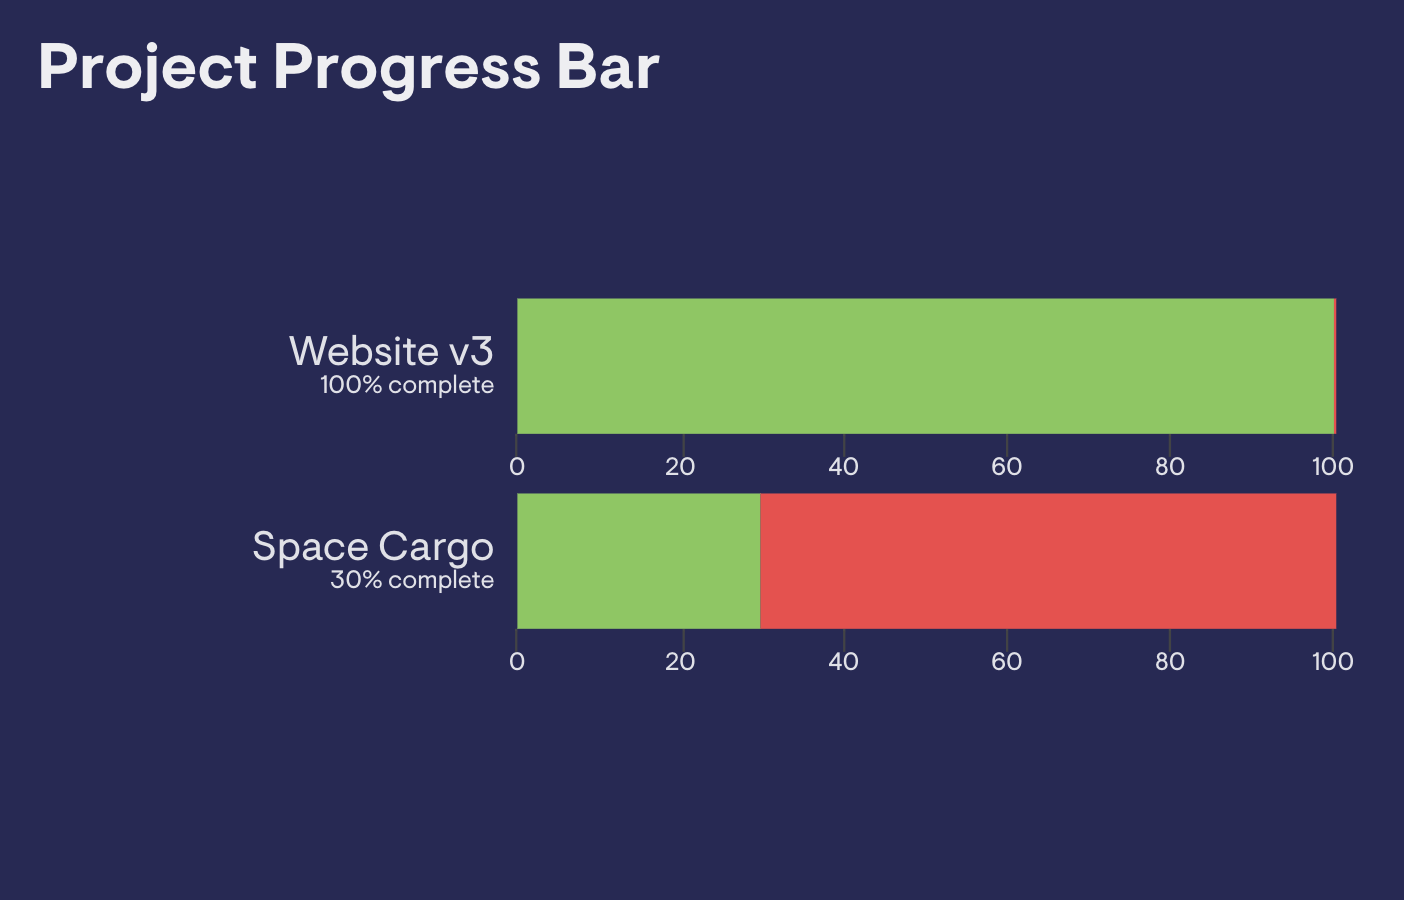 Project Progress Basecamp 2 image